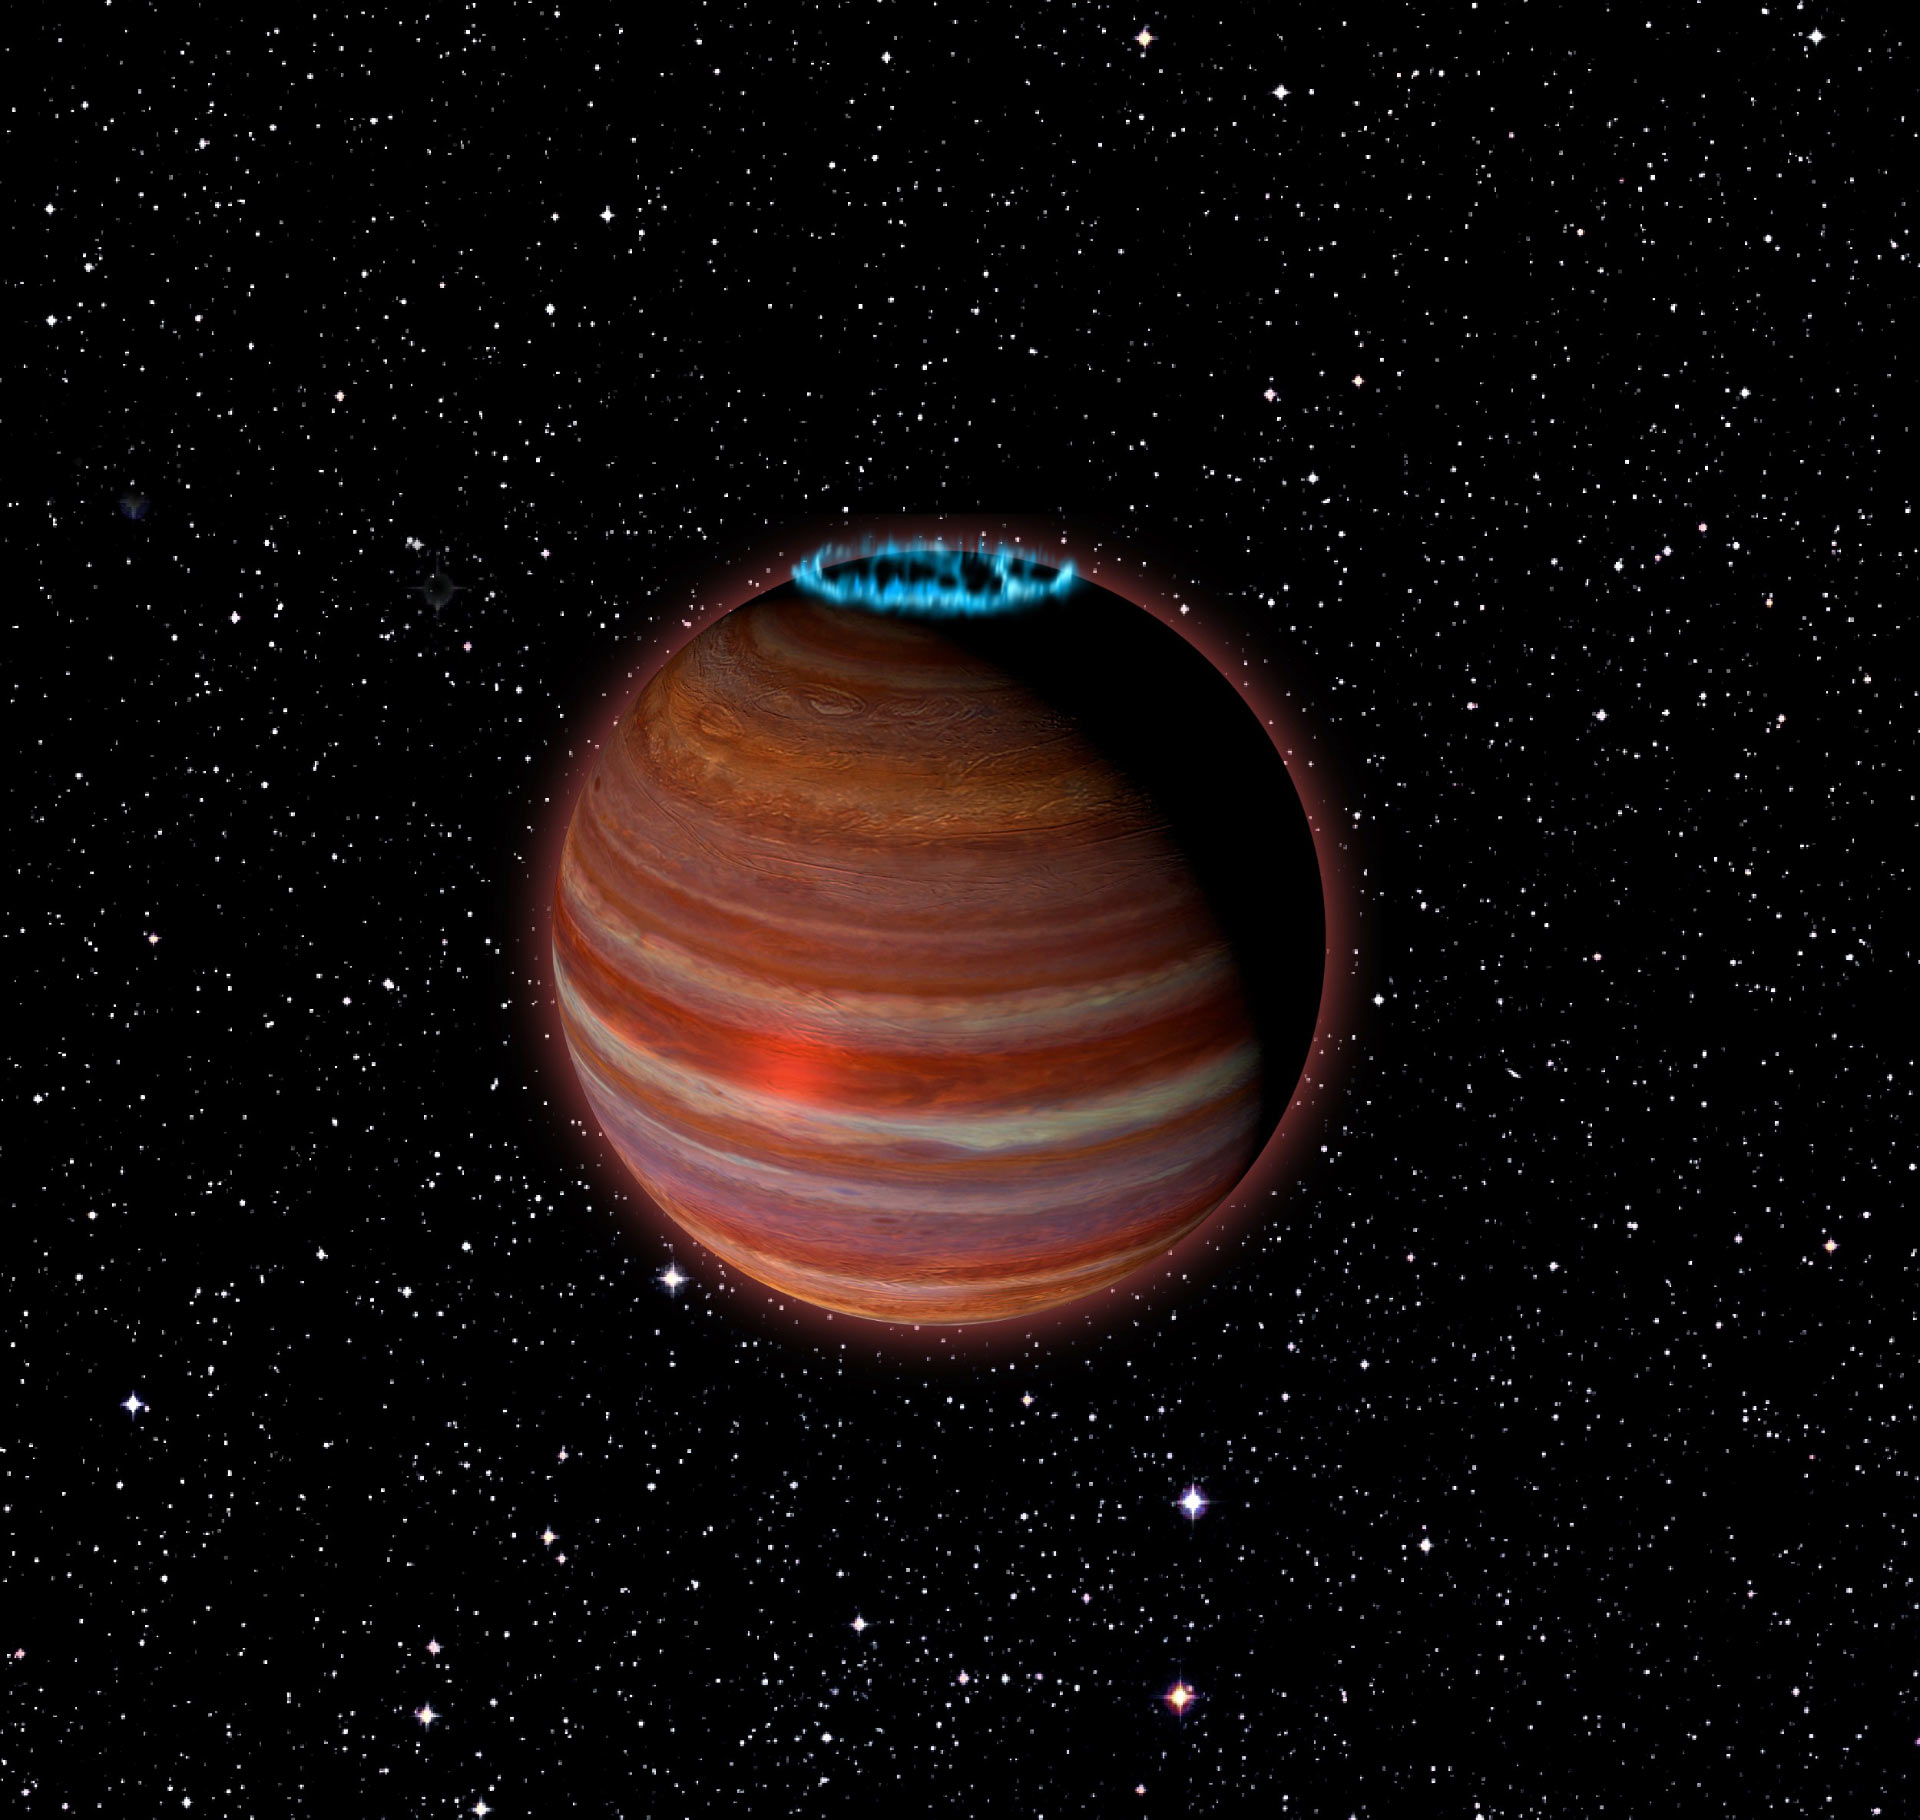 A New Planet that Does not Orbit any Star has been Discovered